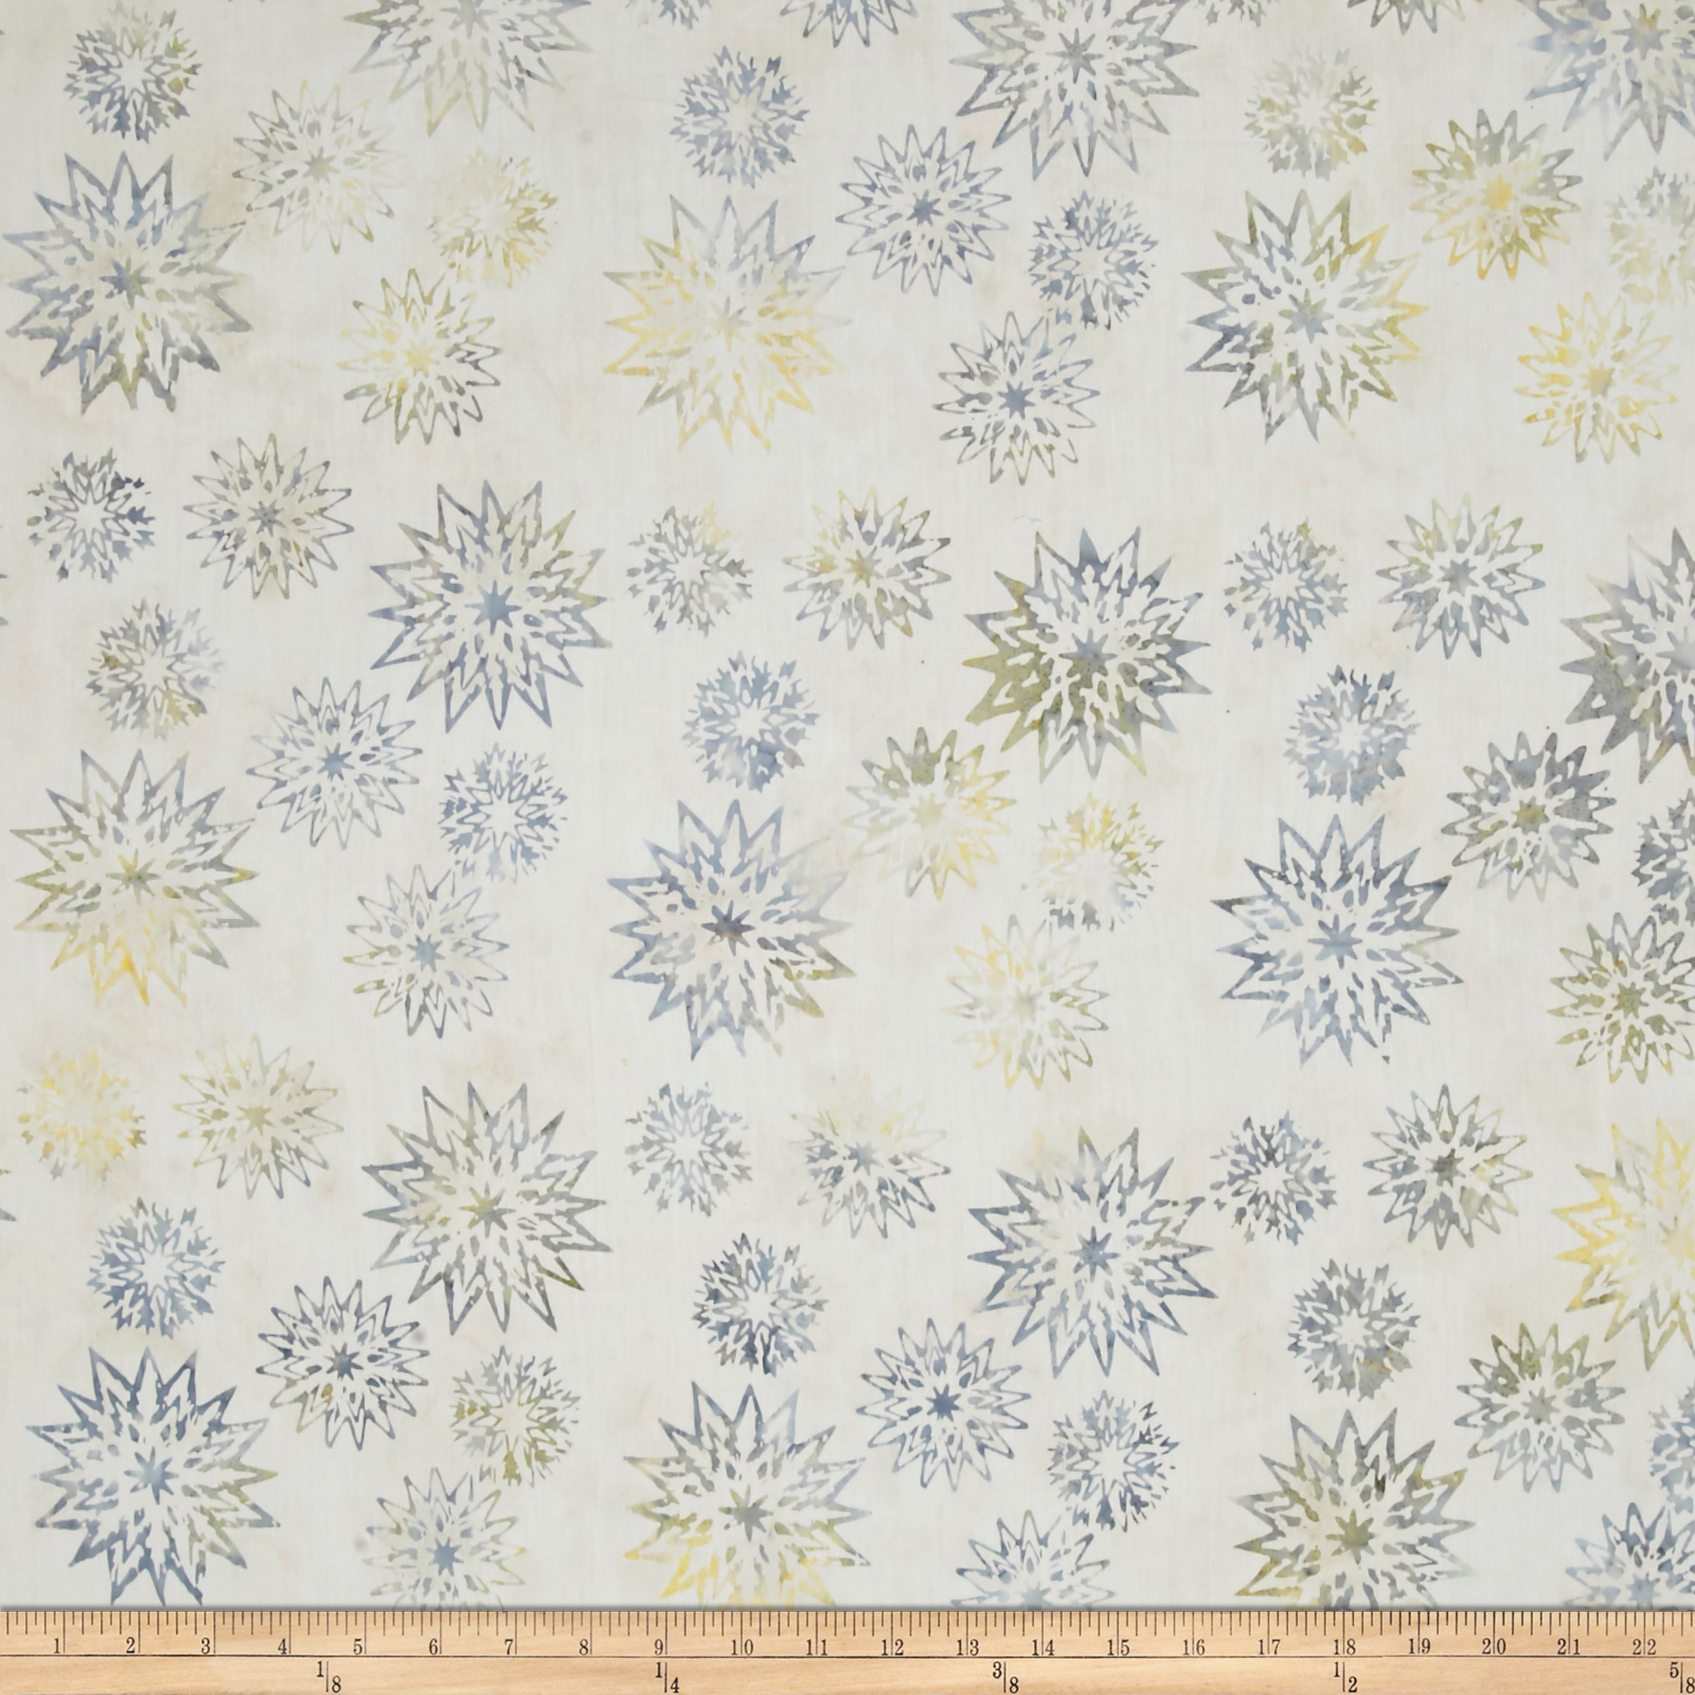 Timeless Treasures Tonga Batik Copper Snowflake Mix Ice Fabric by Timeless Treasures in USA